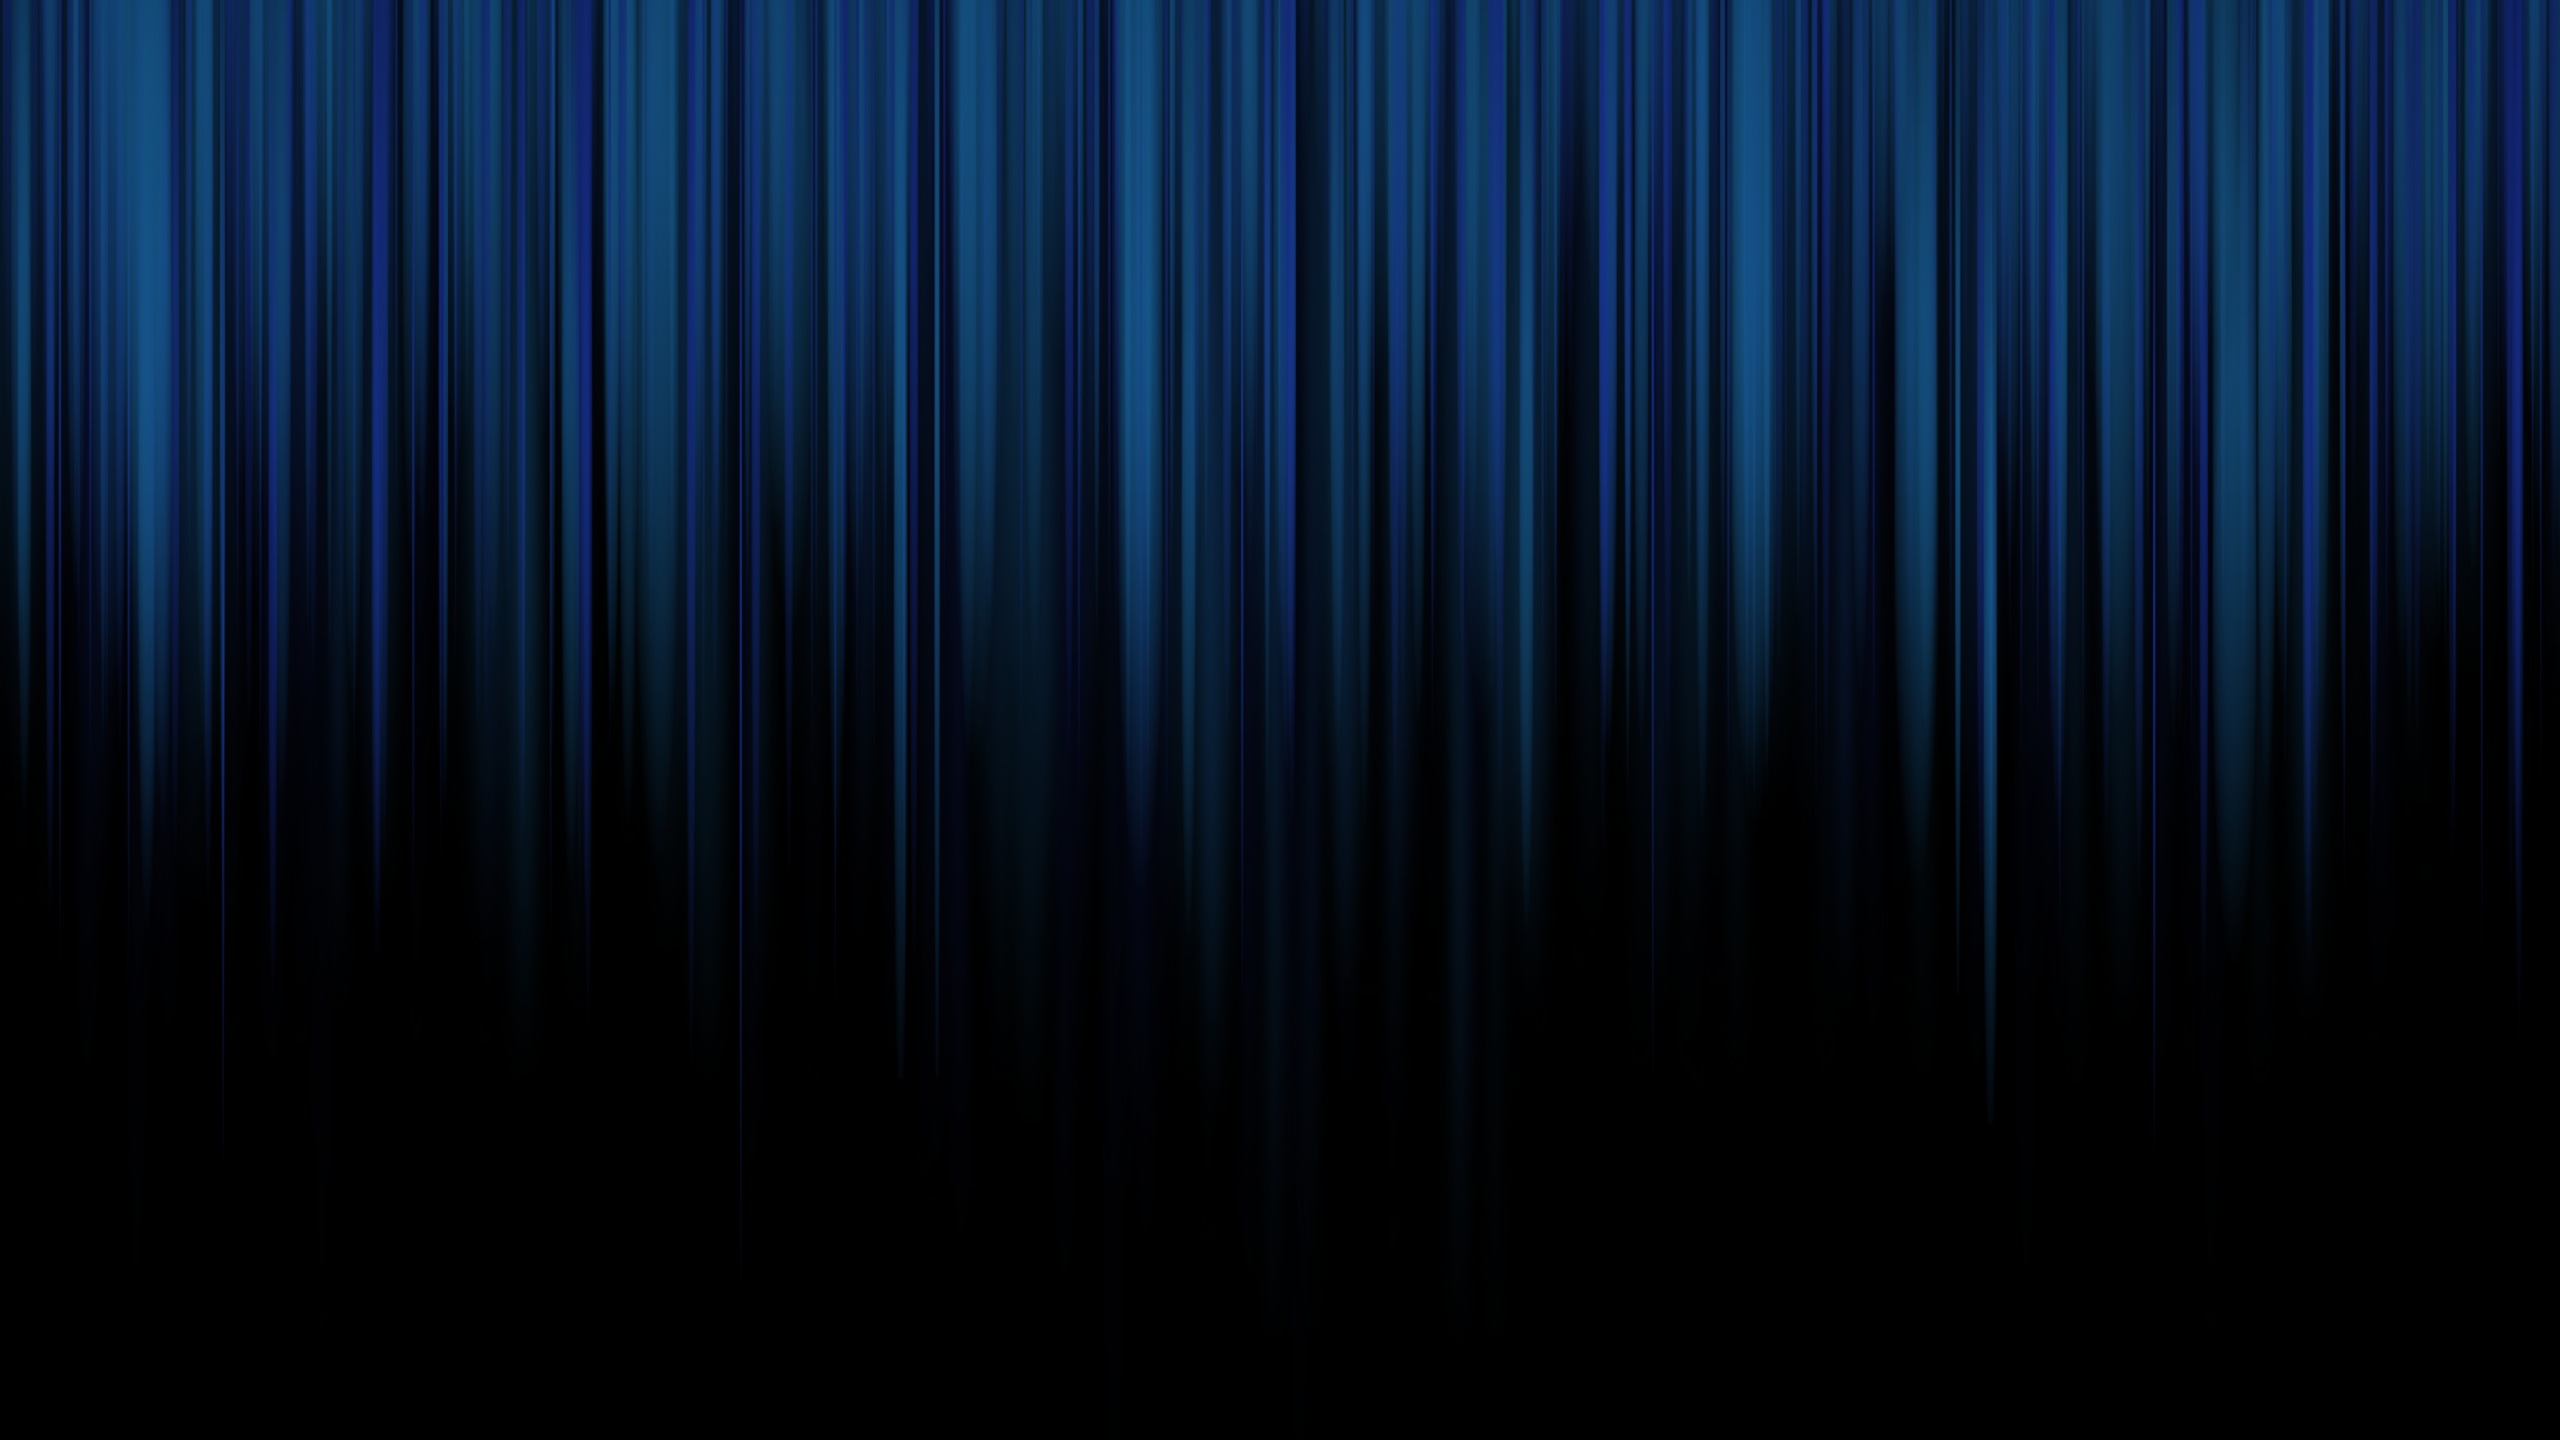 black wallpapers stripes blue wallpaper desktop 2560x1440 2560x1440